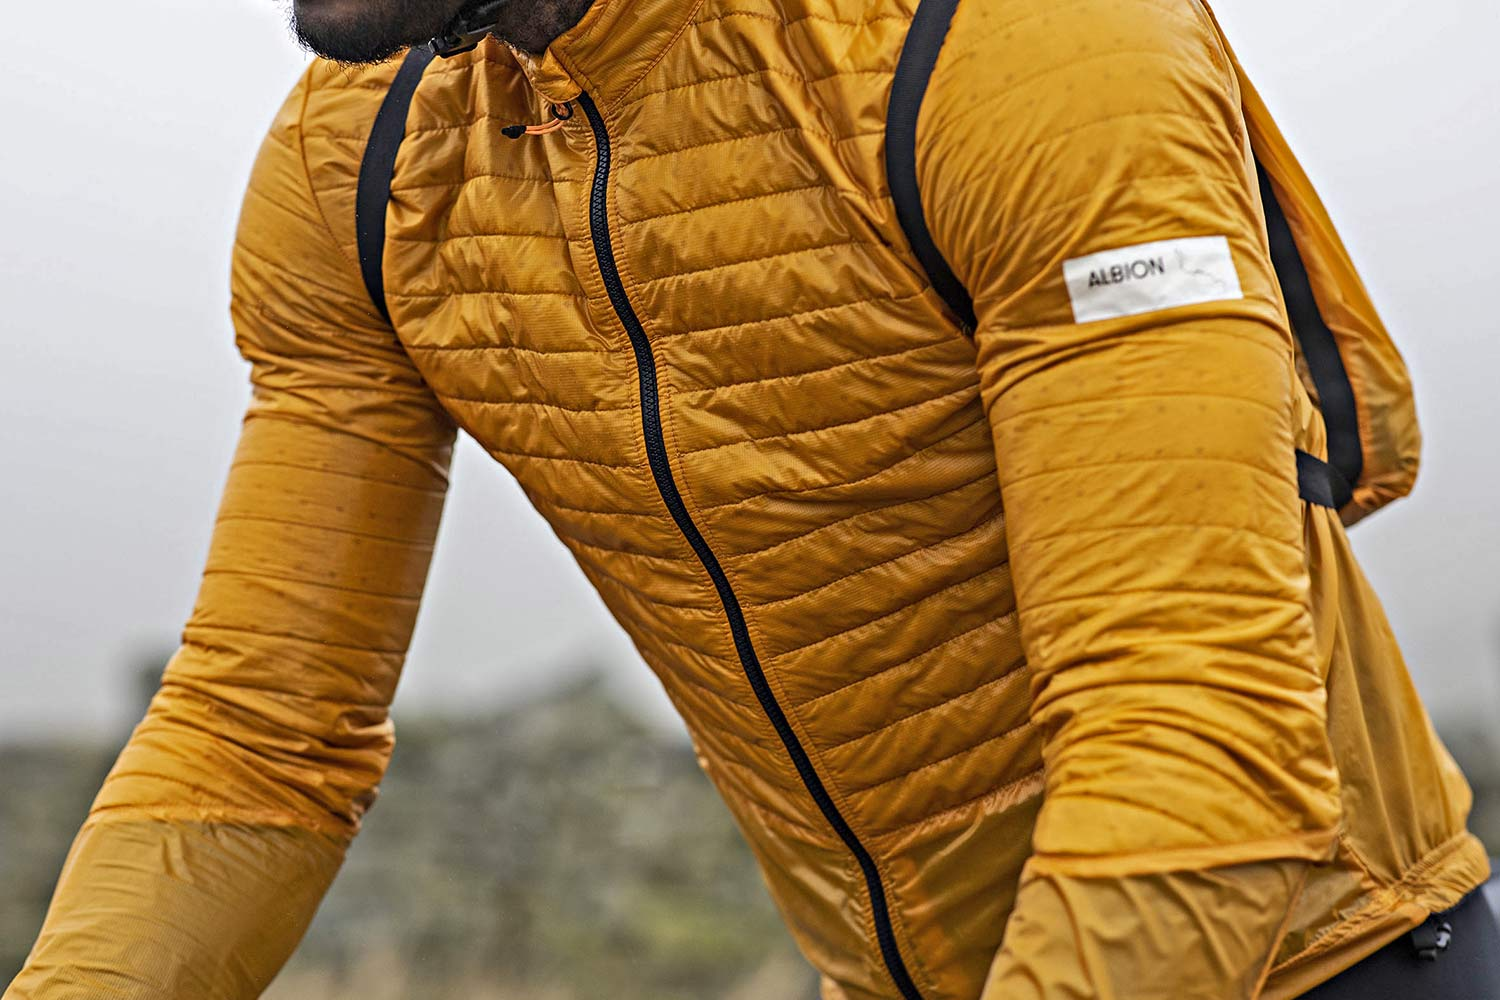 Albion Ultralight Insulated Jacket, ultra lightweight packable breathable eco cycling jacket and backpack, detail up close